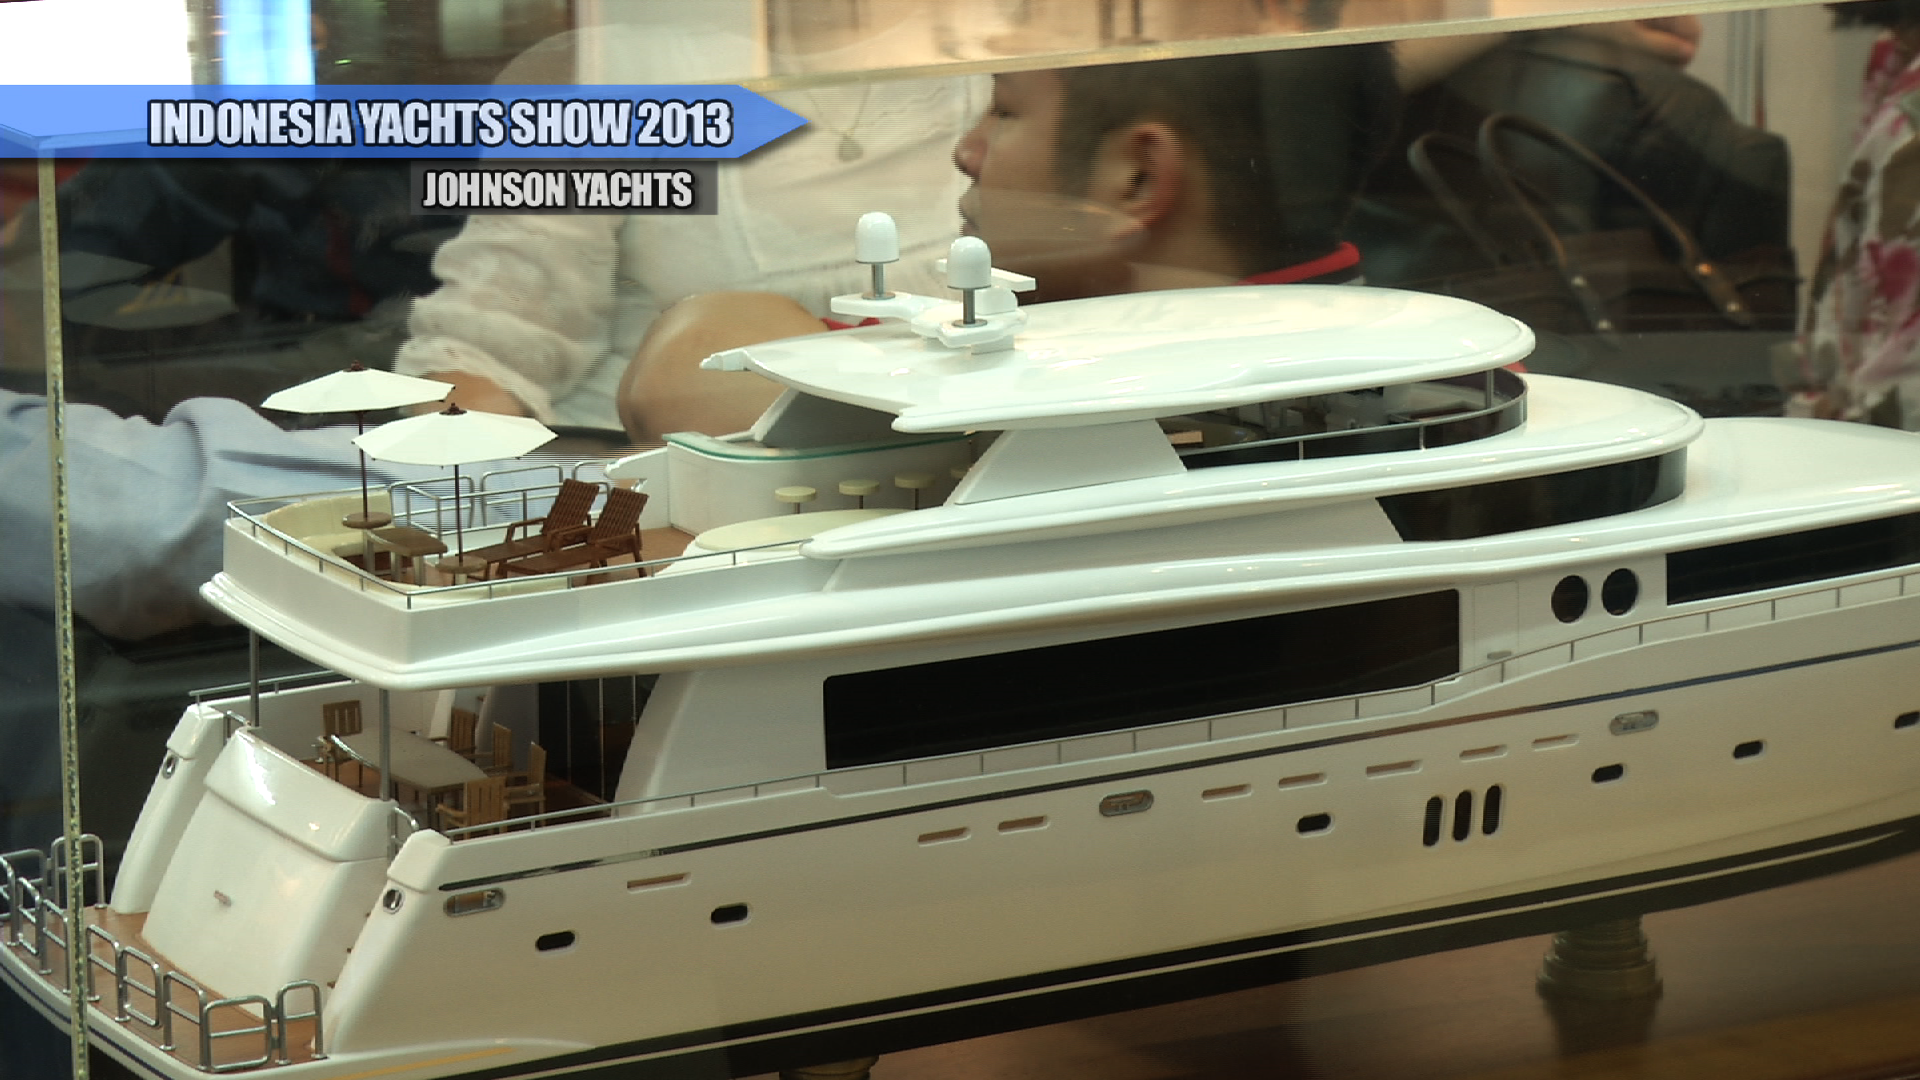 Johnson Yachts (Indonesia Yachts Show 2013)